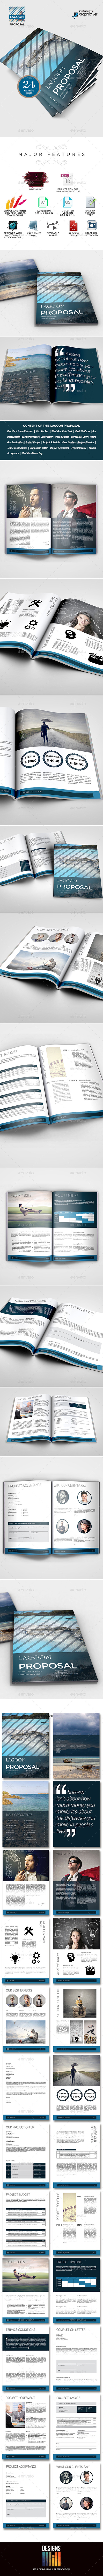 Lagoon Business Proposal Template - Proposals & Invoices Stationery